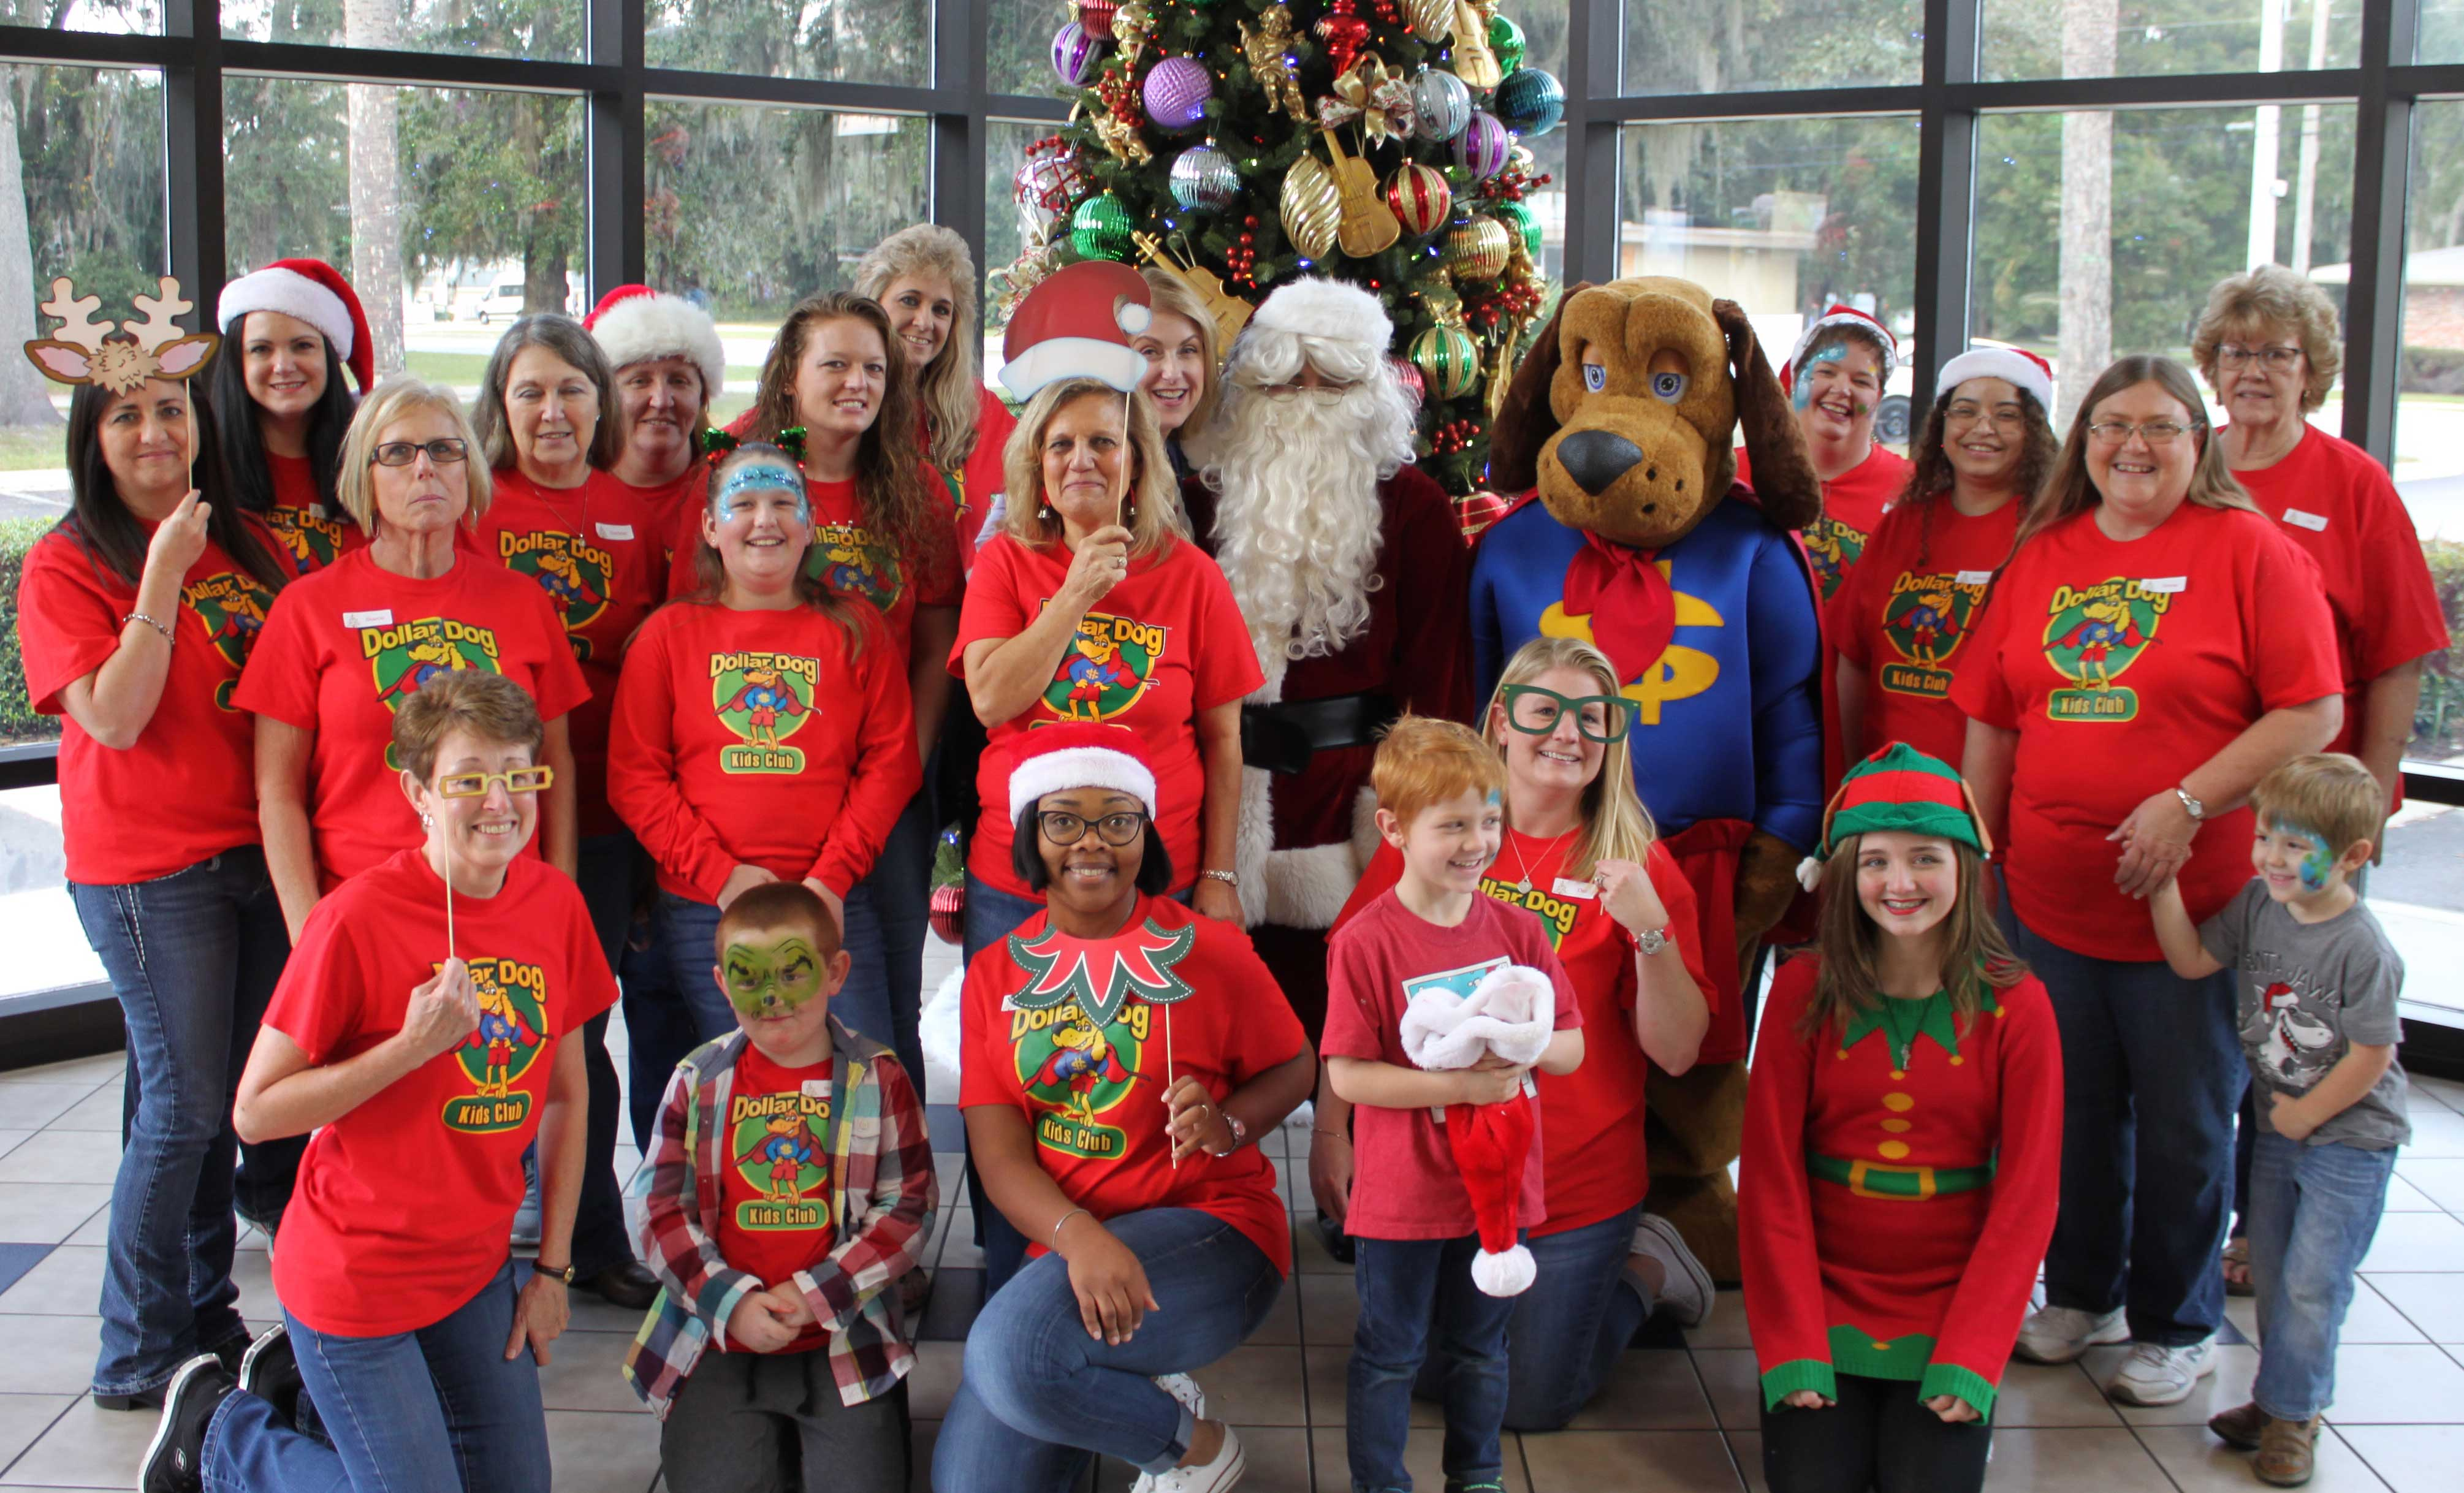 11th Annual Dollar Dog Christmas Party